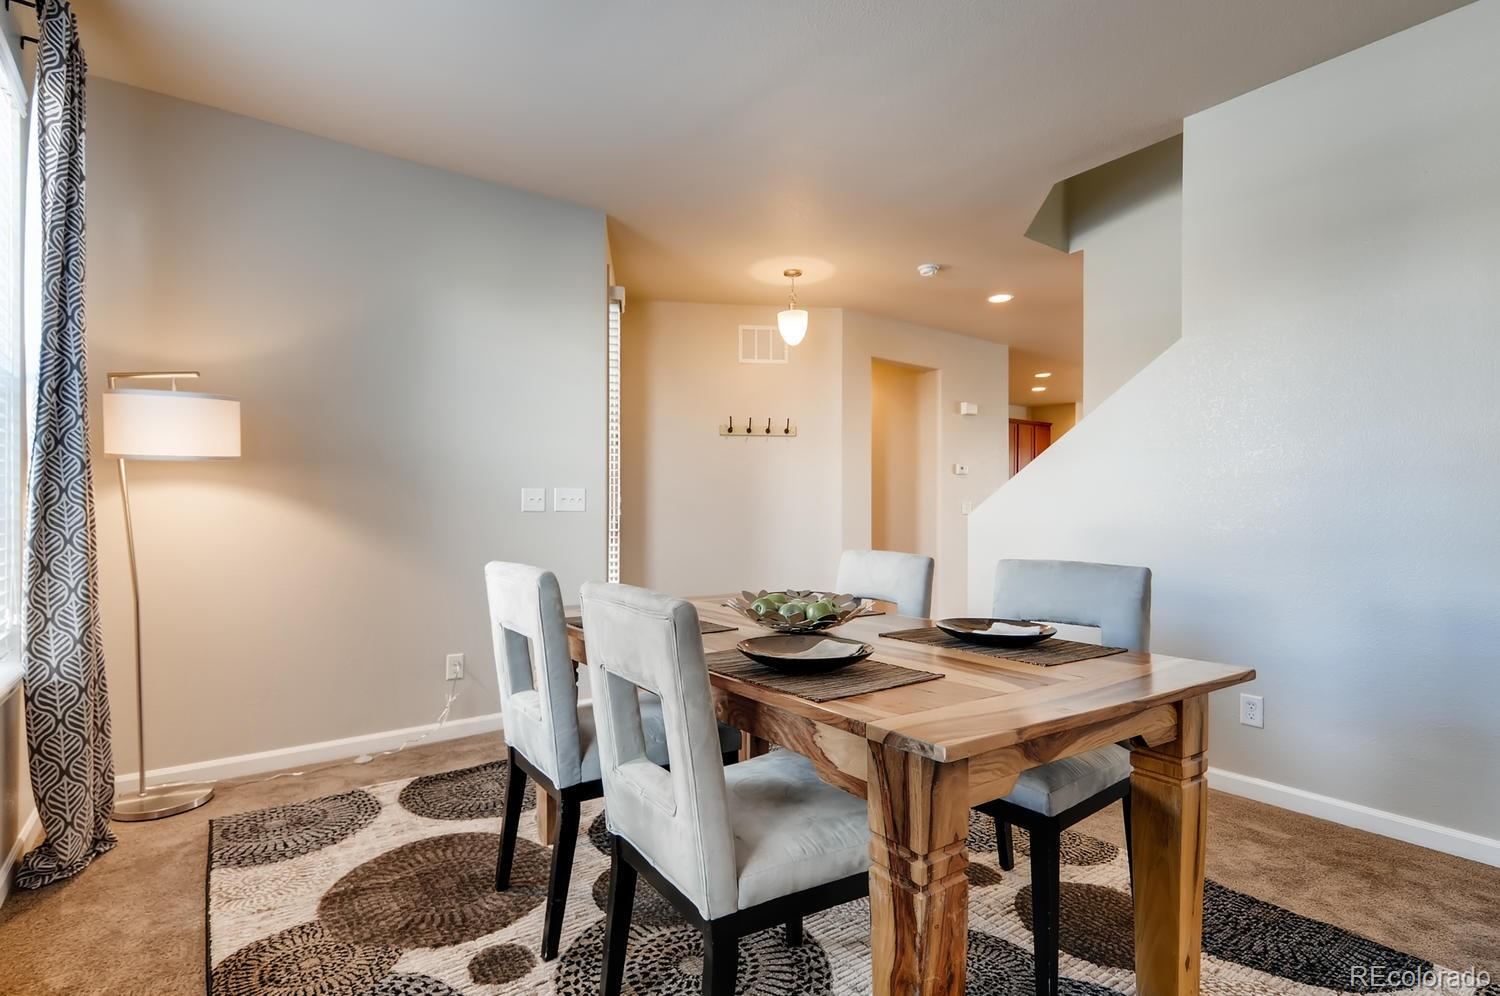 MLS# 7221066 - 2 - 6288 Orchard Court #B, Arvada, CO 80403